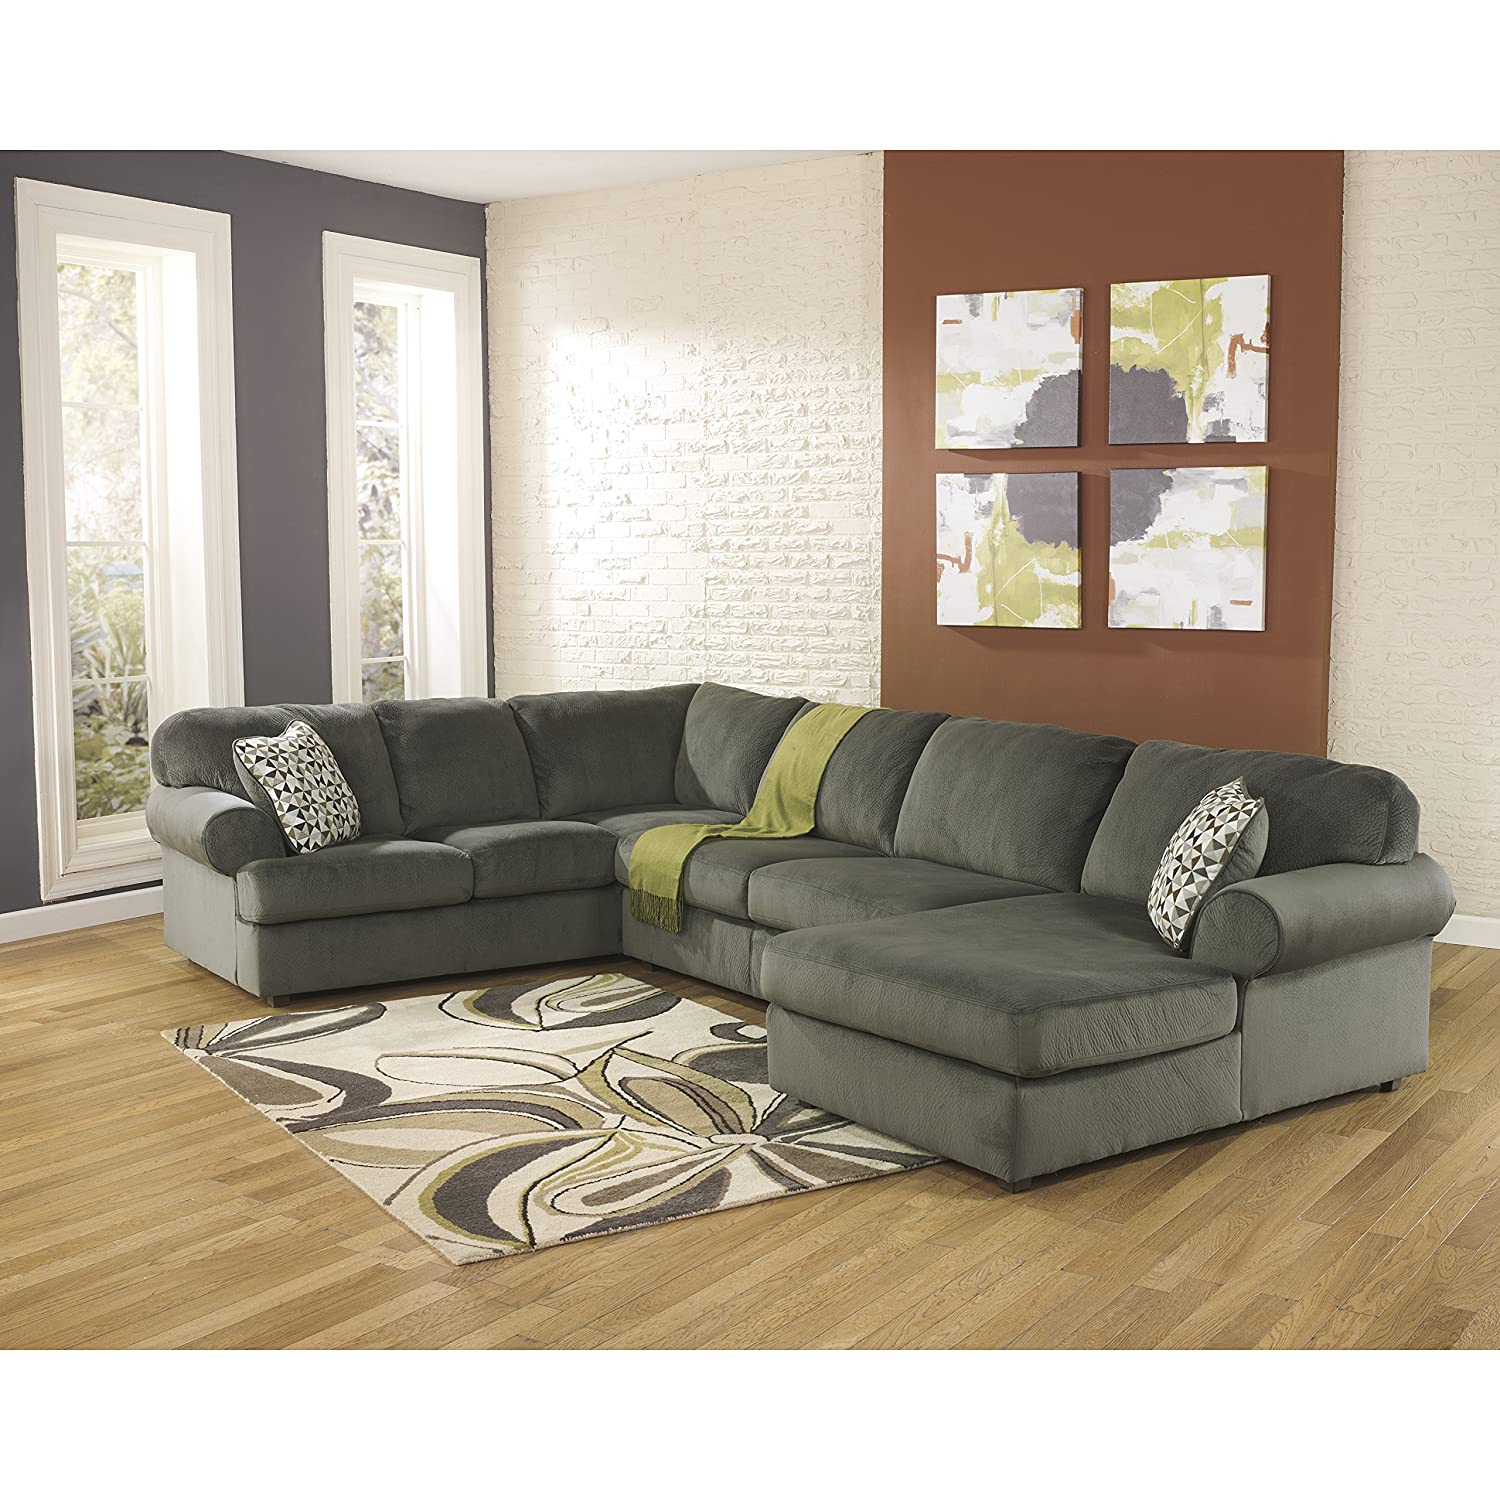 Remarkable Signature Design By Ashley Jessa Place Sectional In Pewter Fabric Spiritservingveterans Wood Chair Design Ideas Spiritservingveteransorg